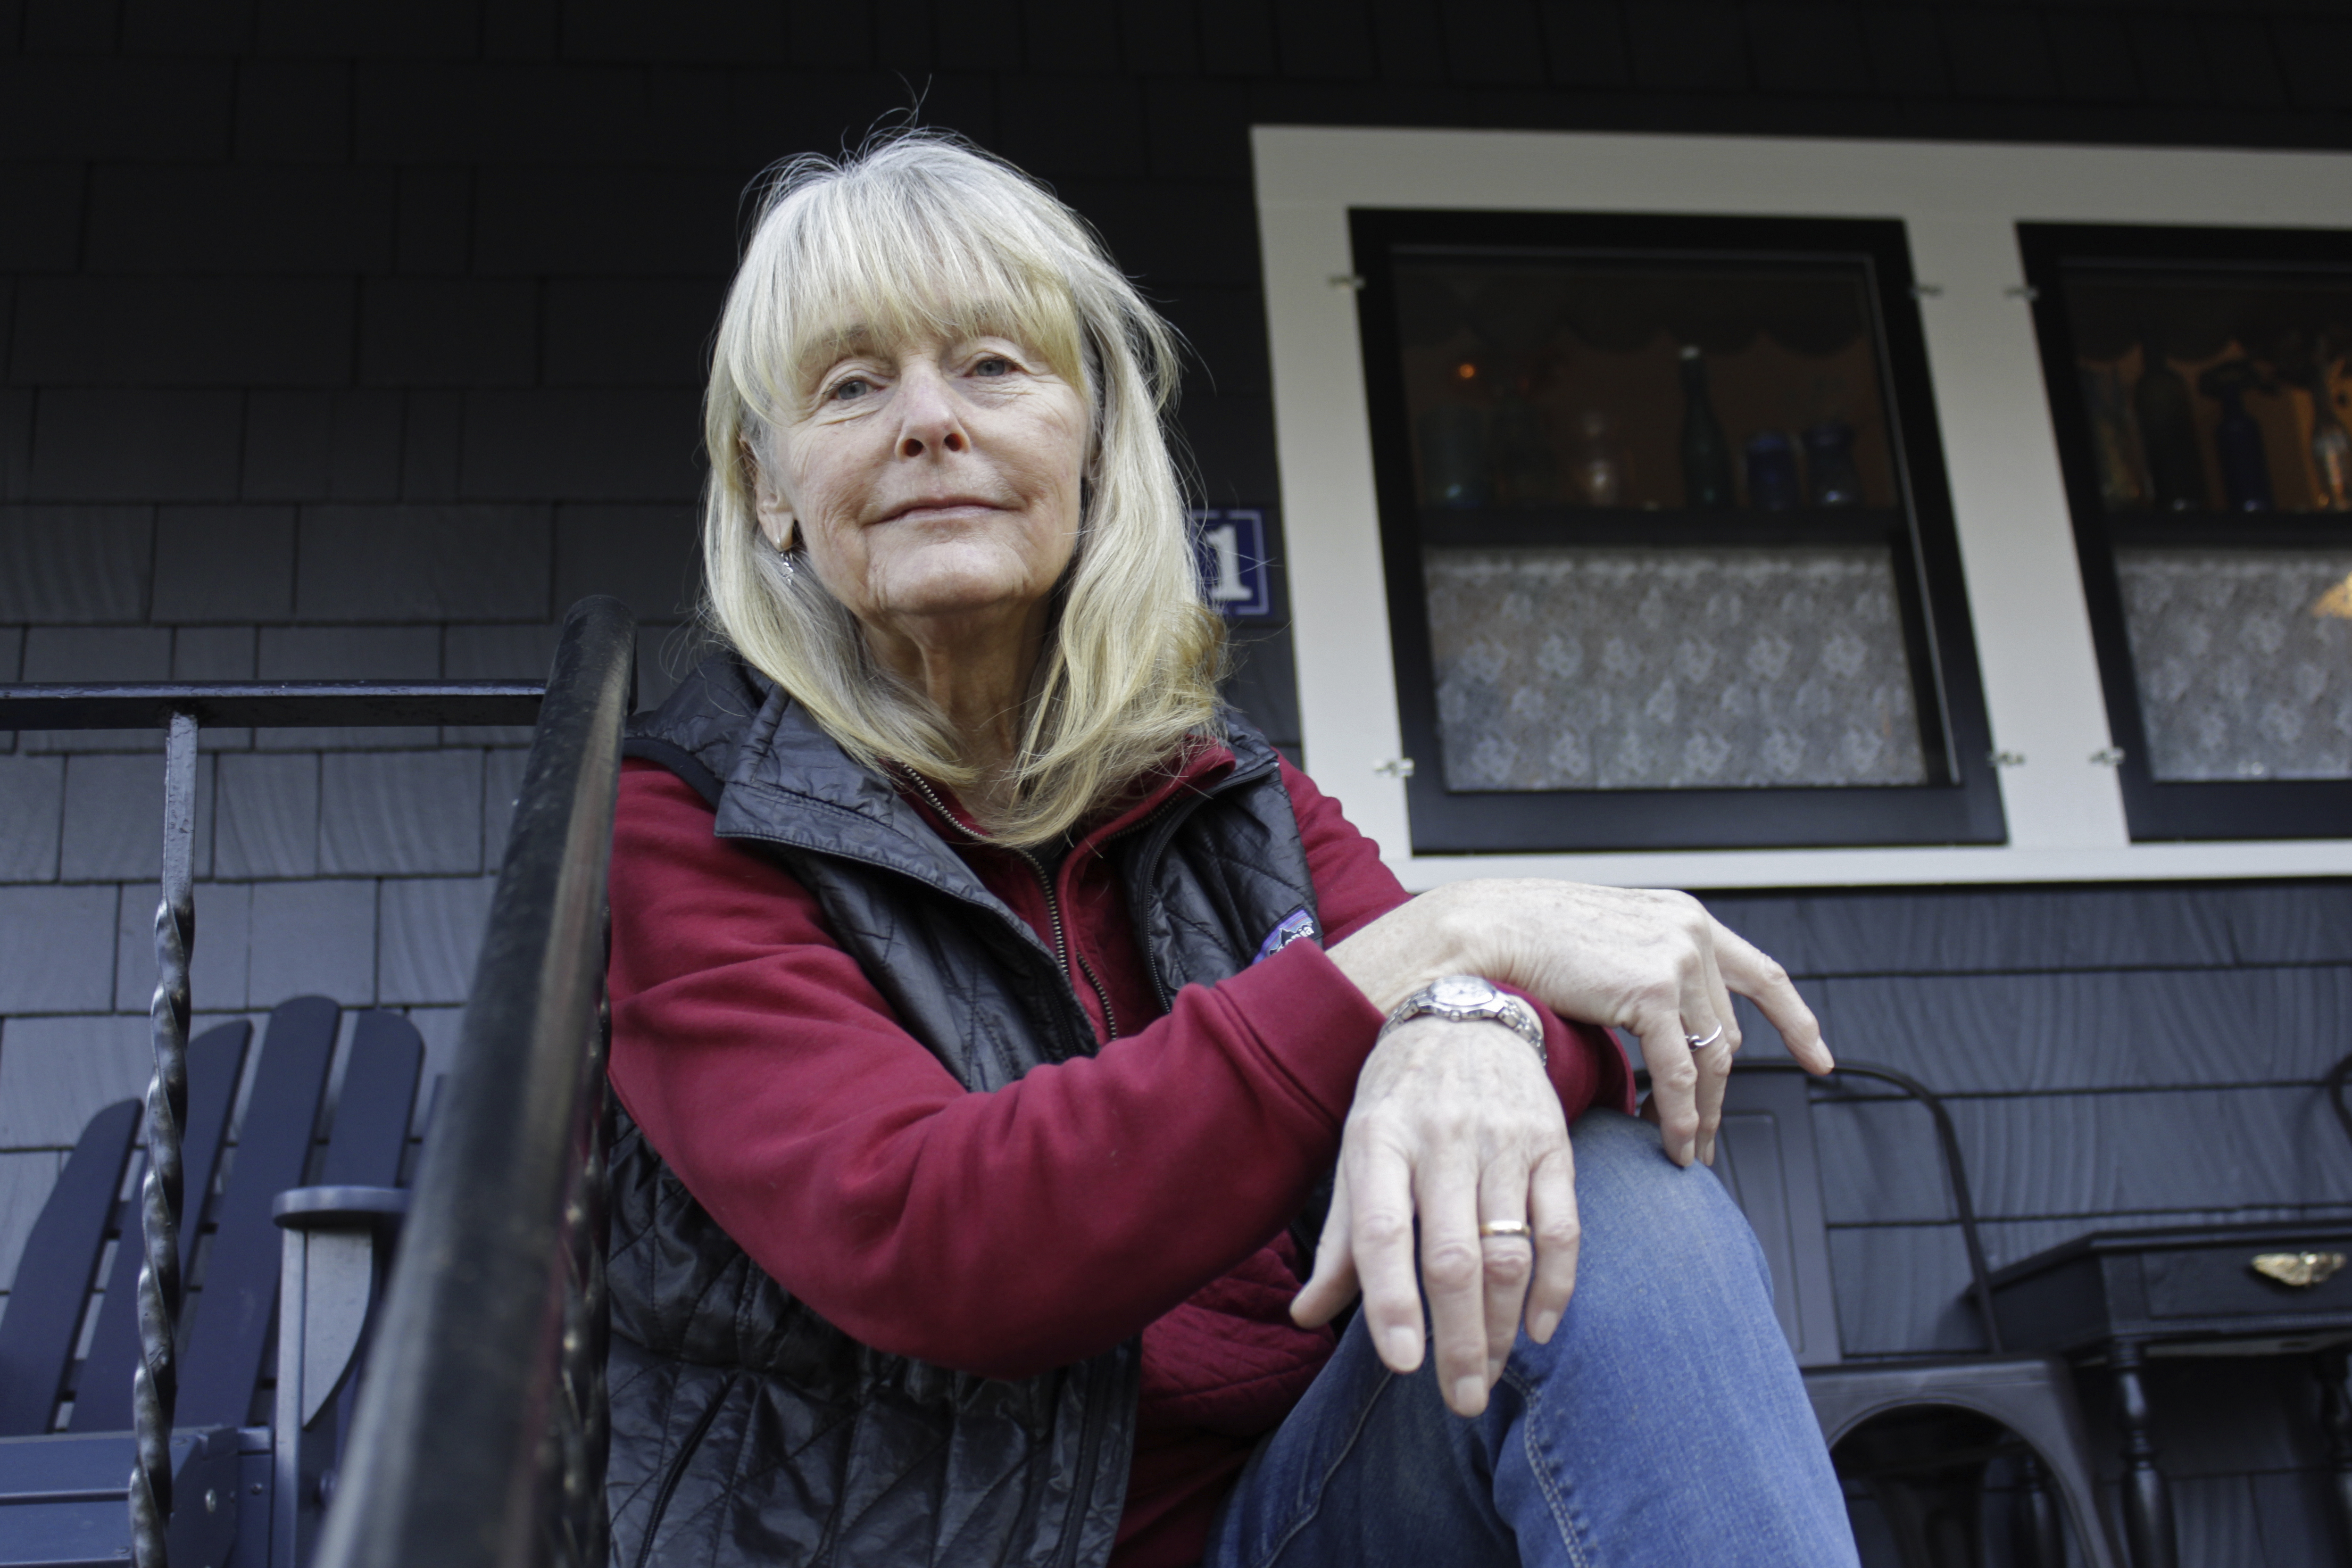 Susan Crowley, a 75-year-old retired attorney, sits outside her home in Hood River, Ore., on Jan. 23, 2021.